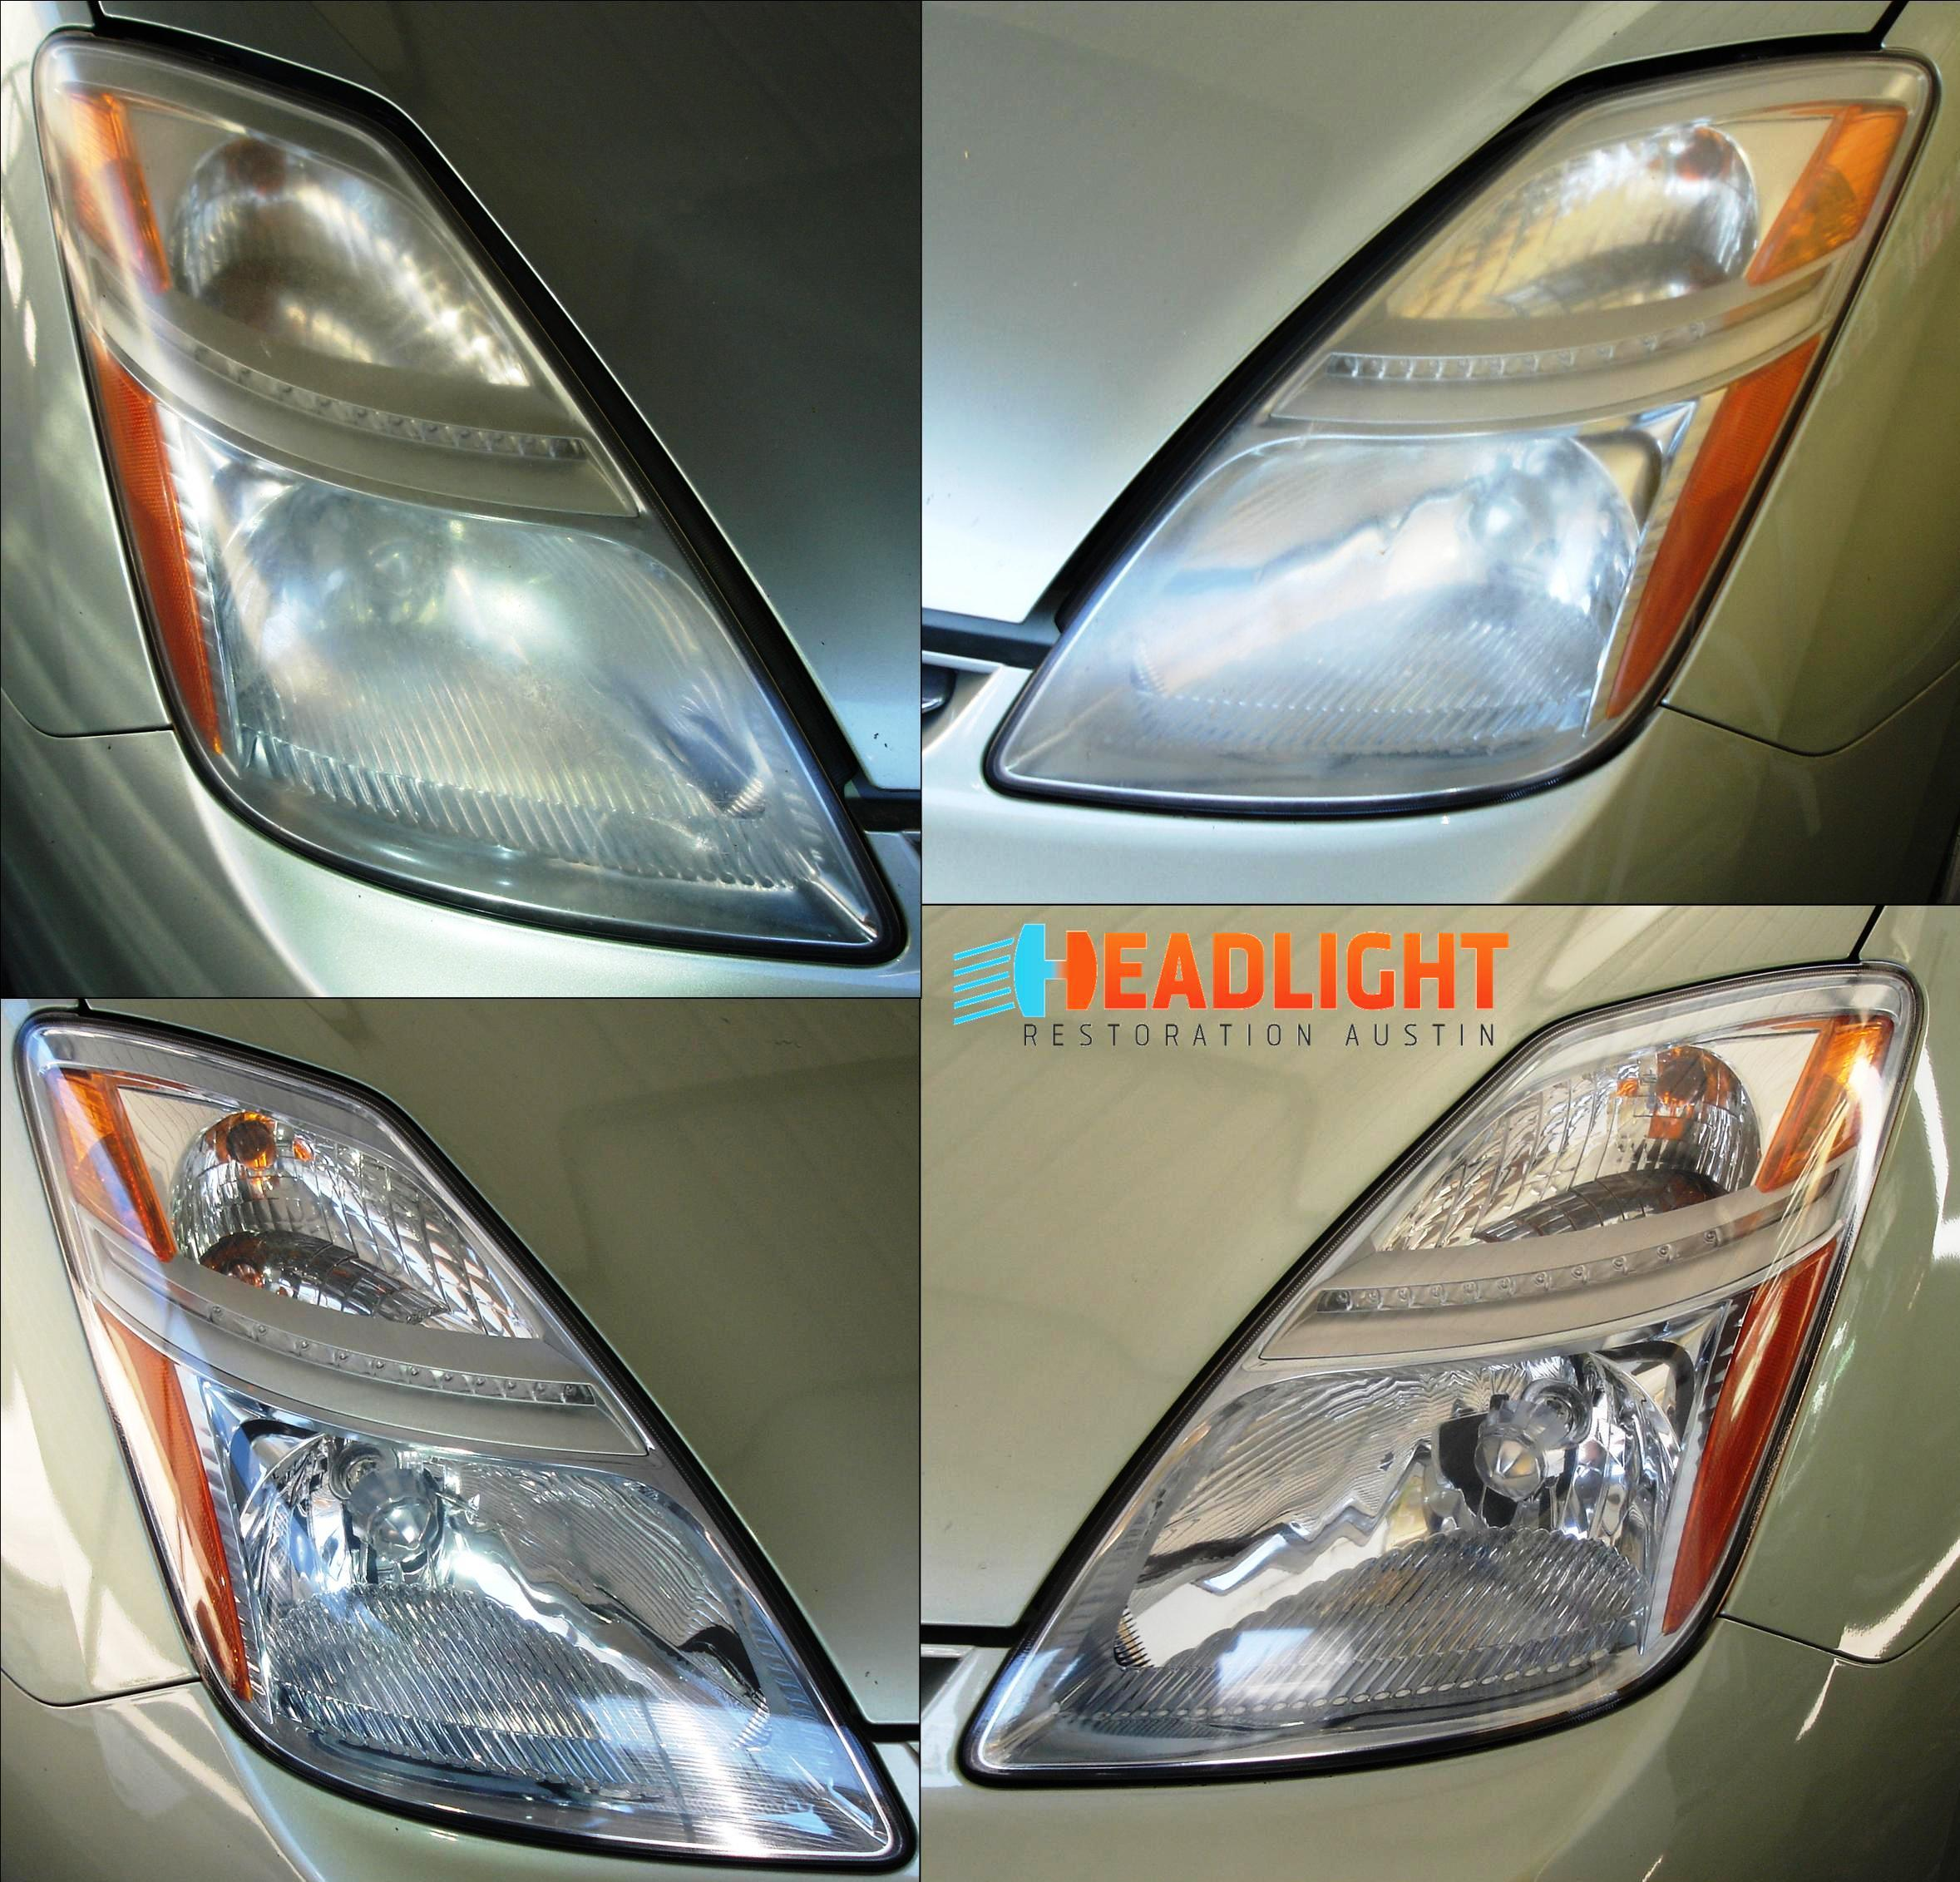 Headlight Restoration Service Headlight Restoration Austin Llc